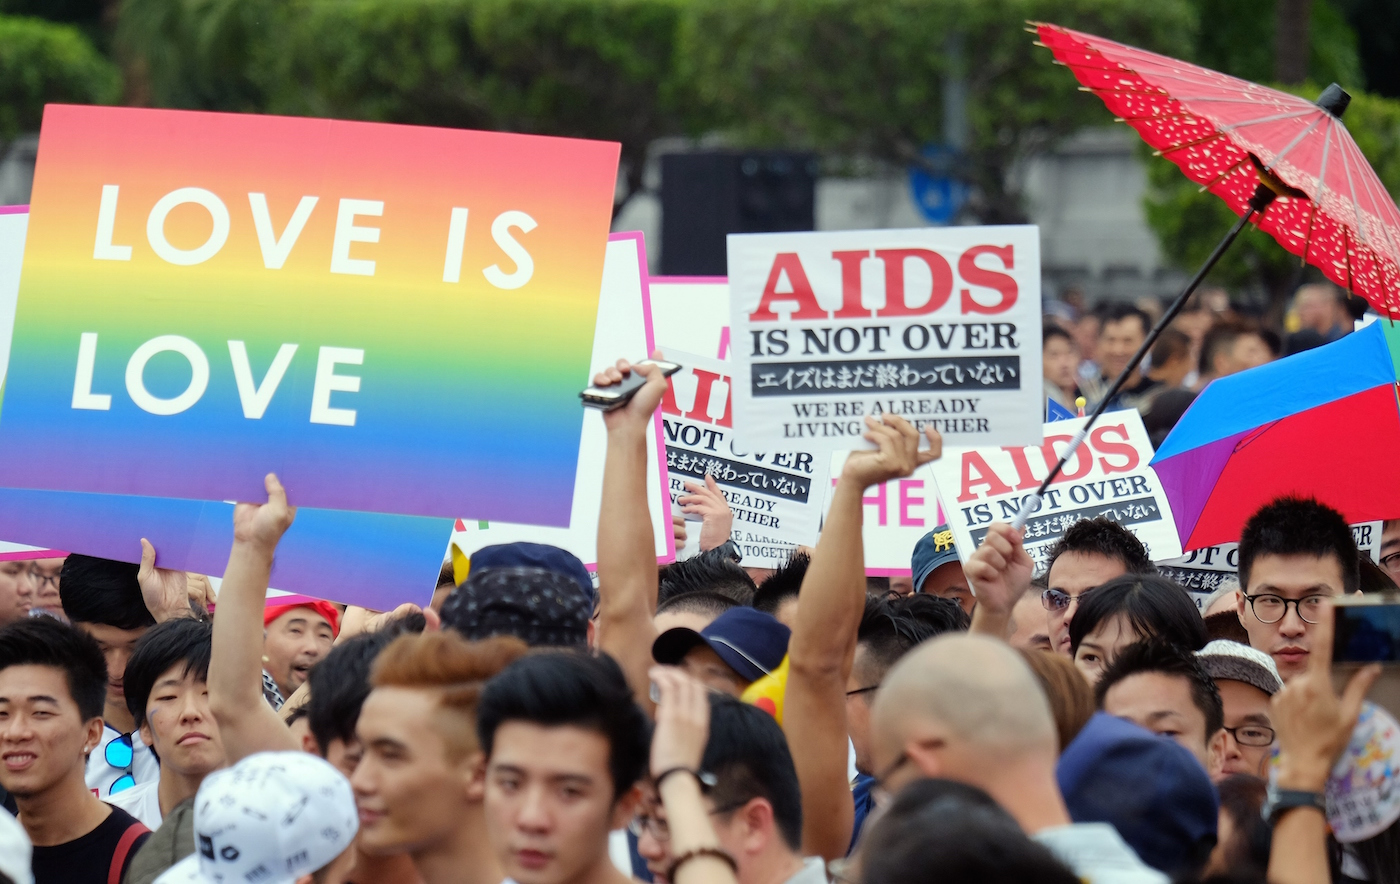 Being gay in Taiwan is rarely an issue